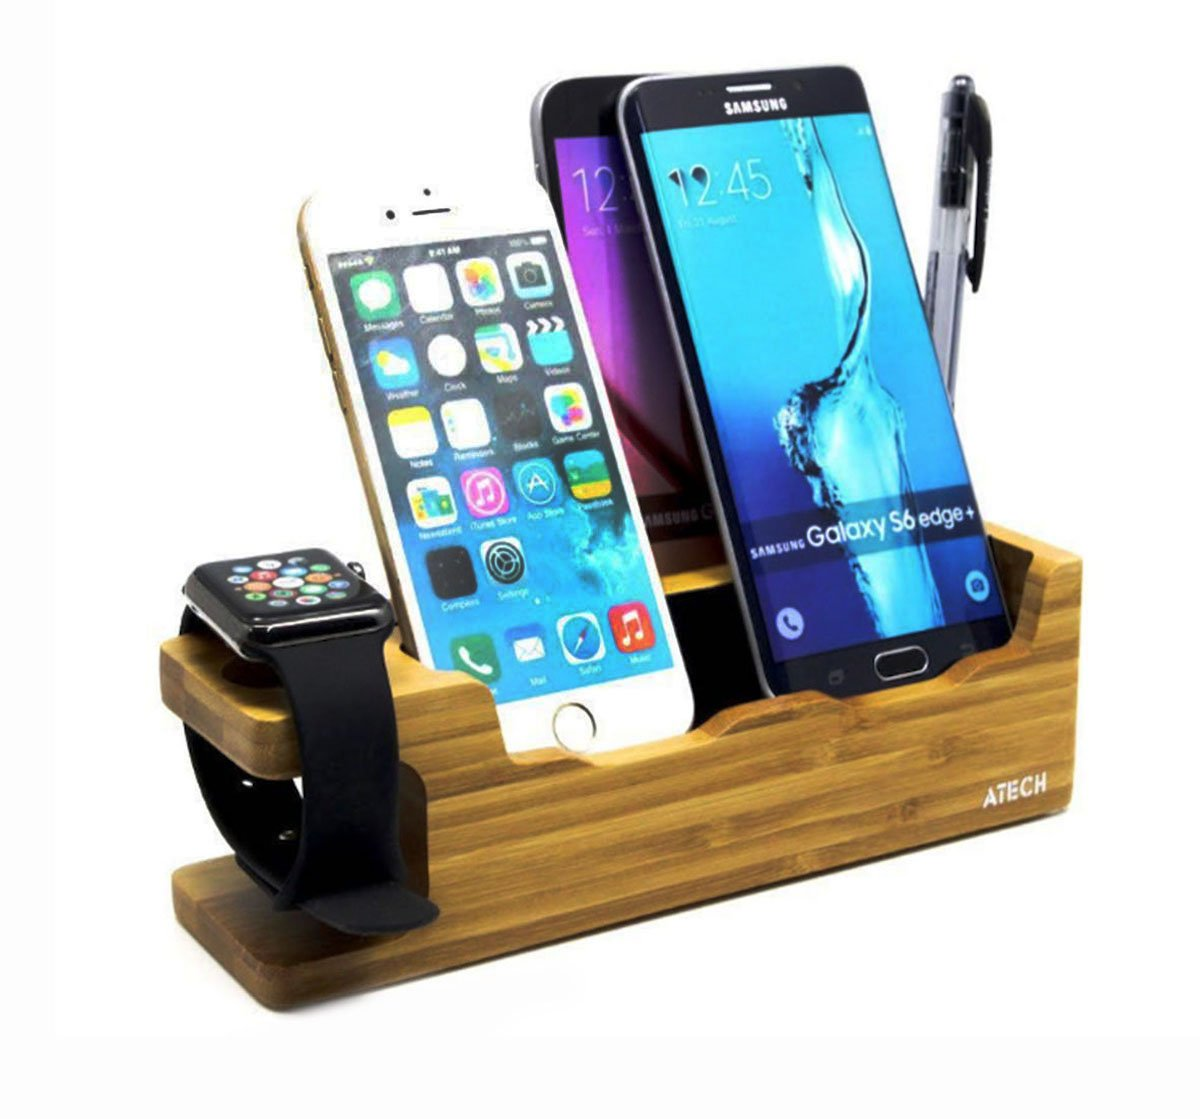 Bamboo Charging Station, Apple Watch Stand Smartphone Holder Apple Pencil Holder, Desktop Docking Charger Station, Multi-Device Organizer for Apple iWatch, iPhones, Samsung Galaxy Android Smartphones